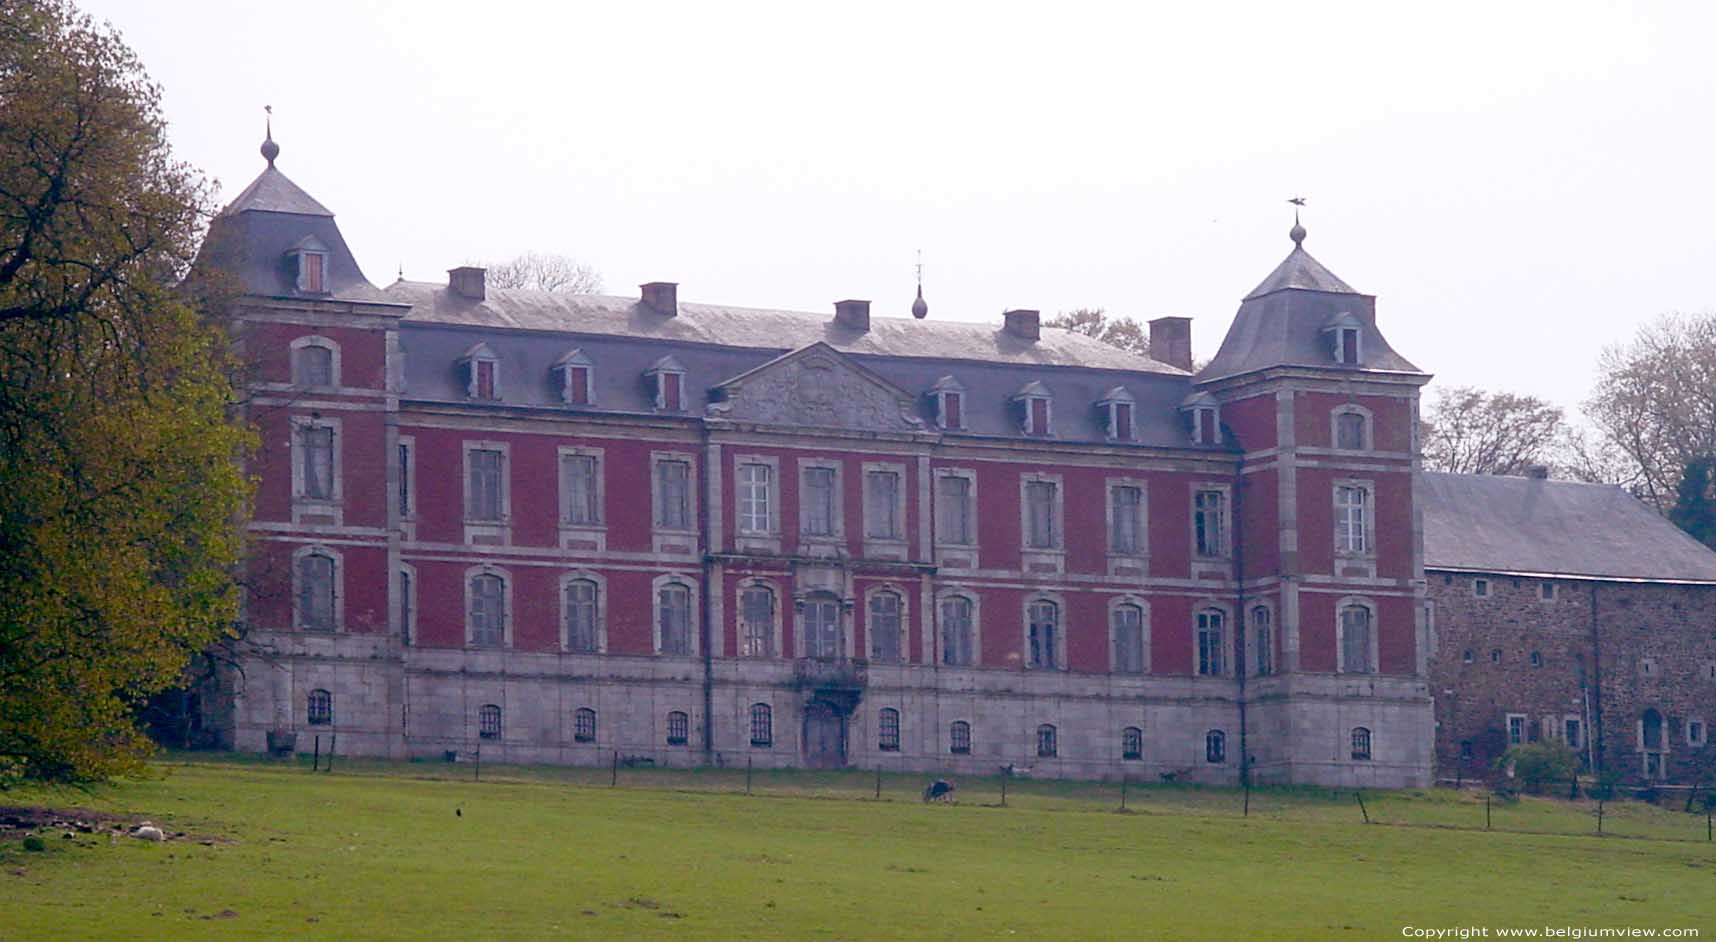 Château belle maison marchin photo